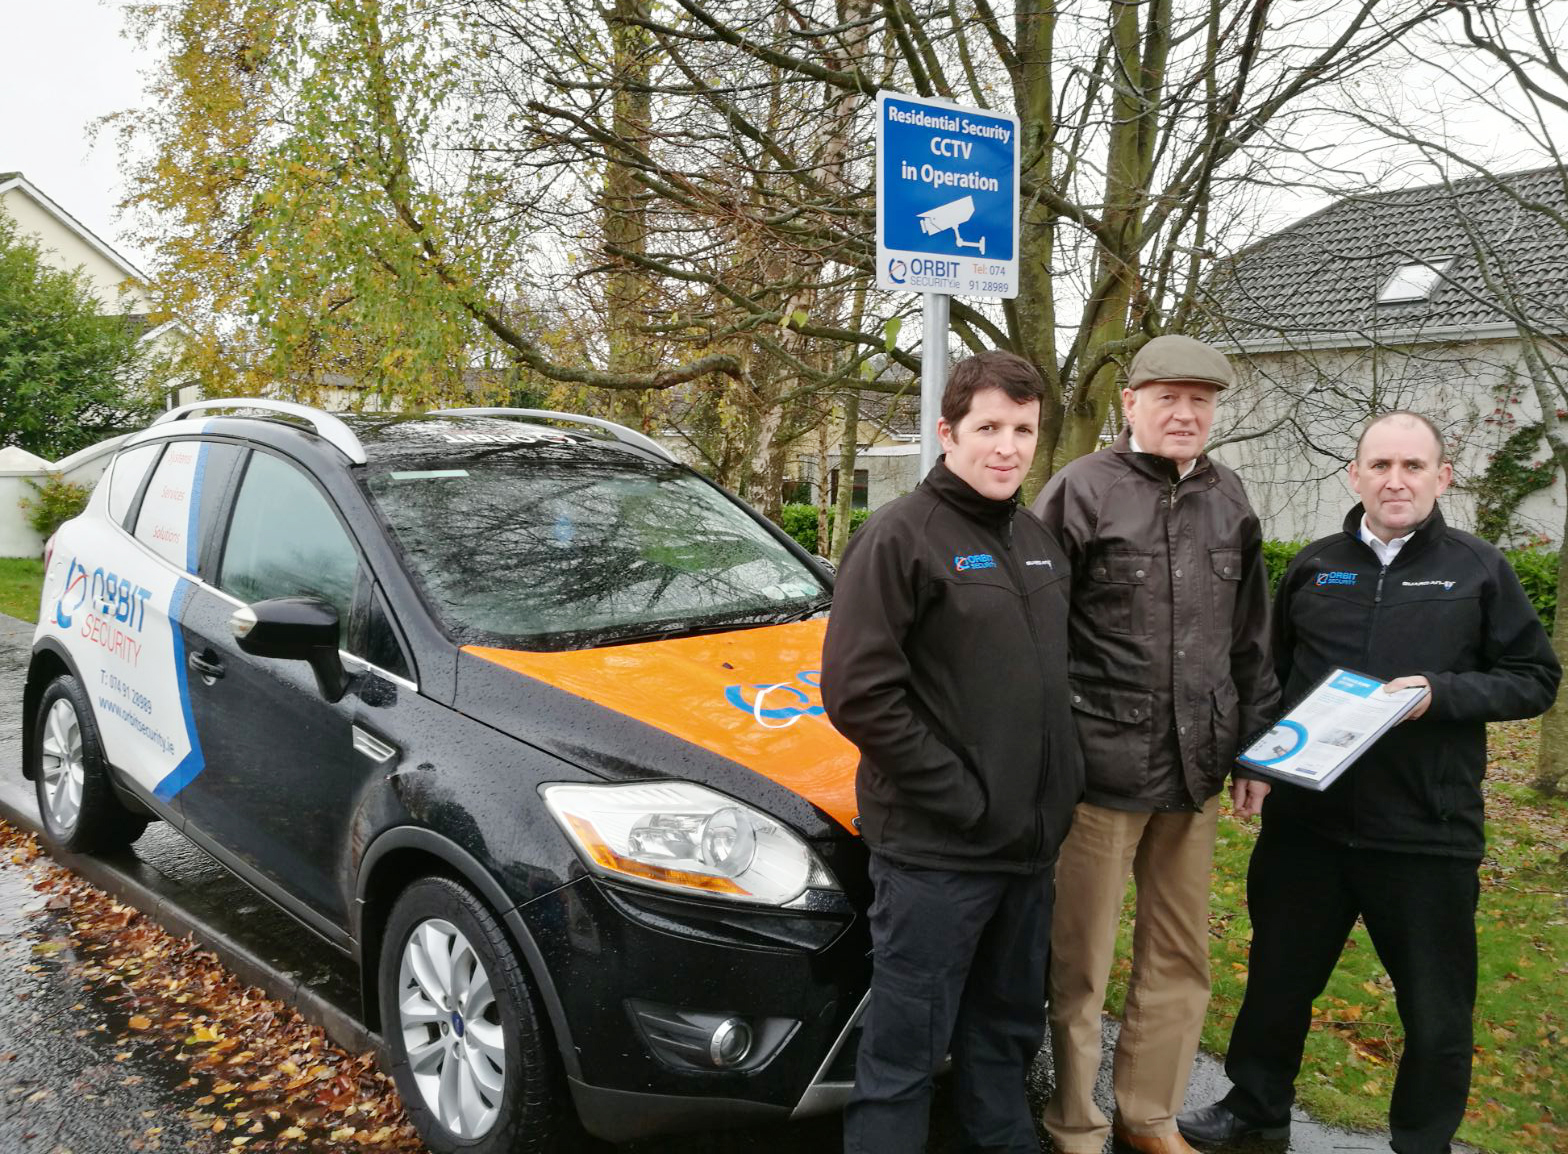 Orbit Security handover the Residential CCTV System to Whitethorn Residents Association